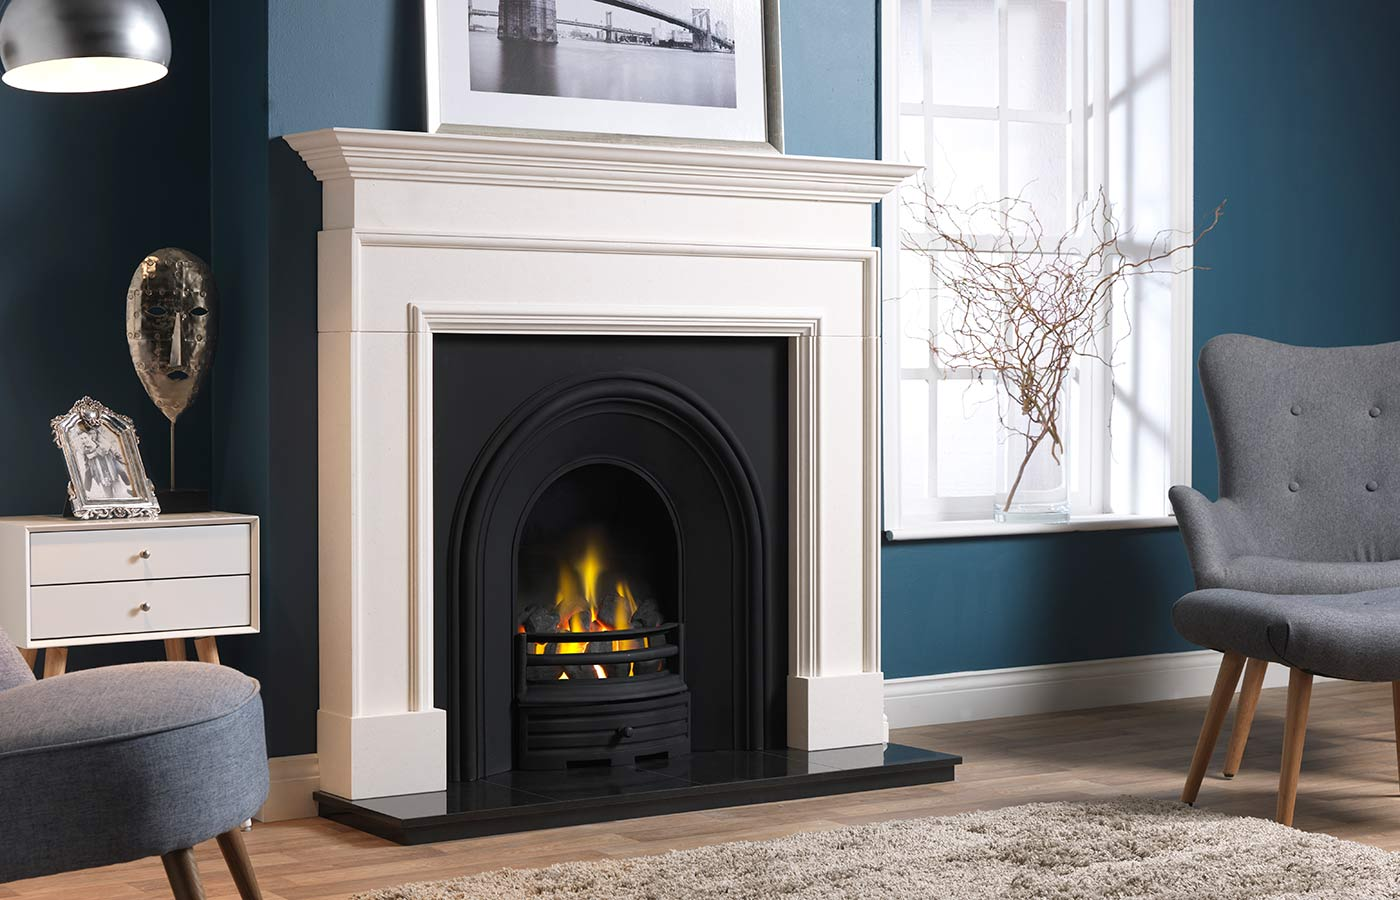 The Cortese Fireplace